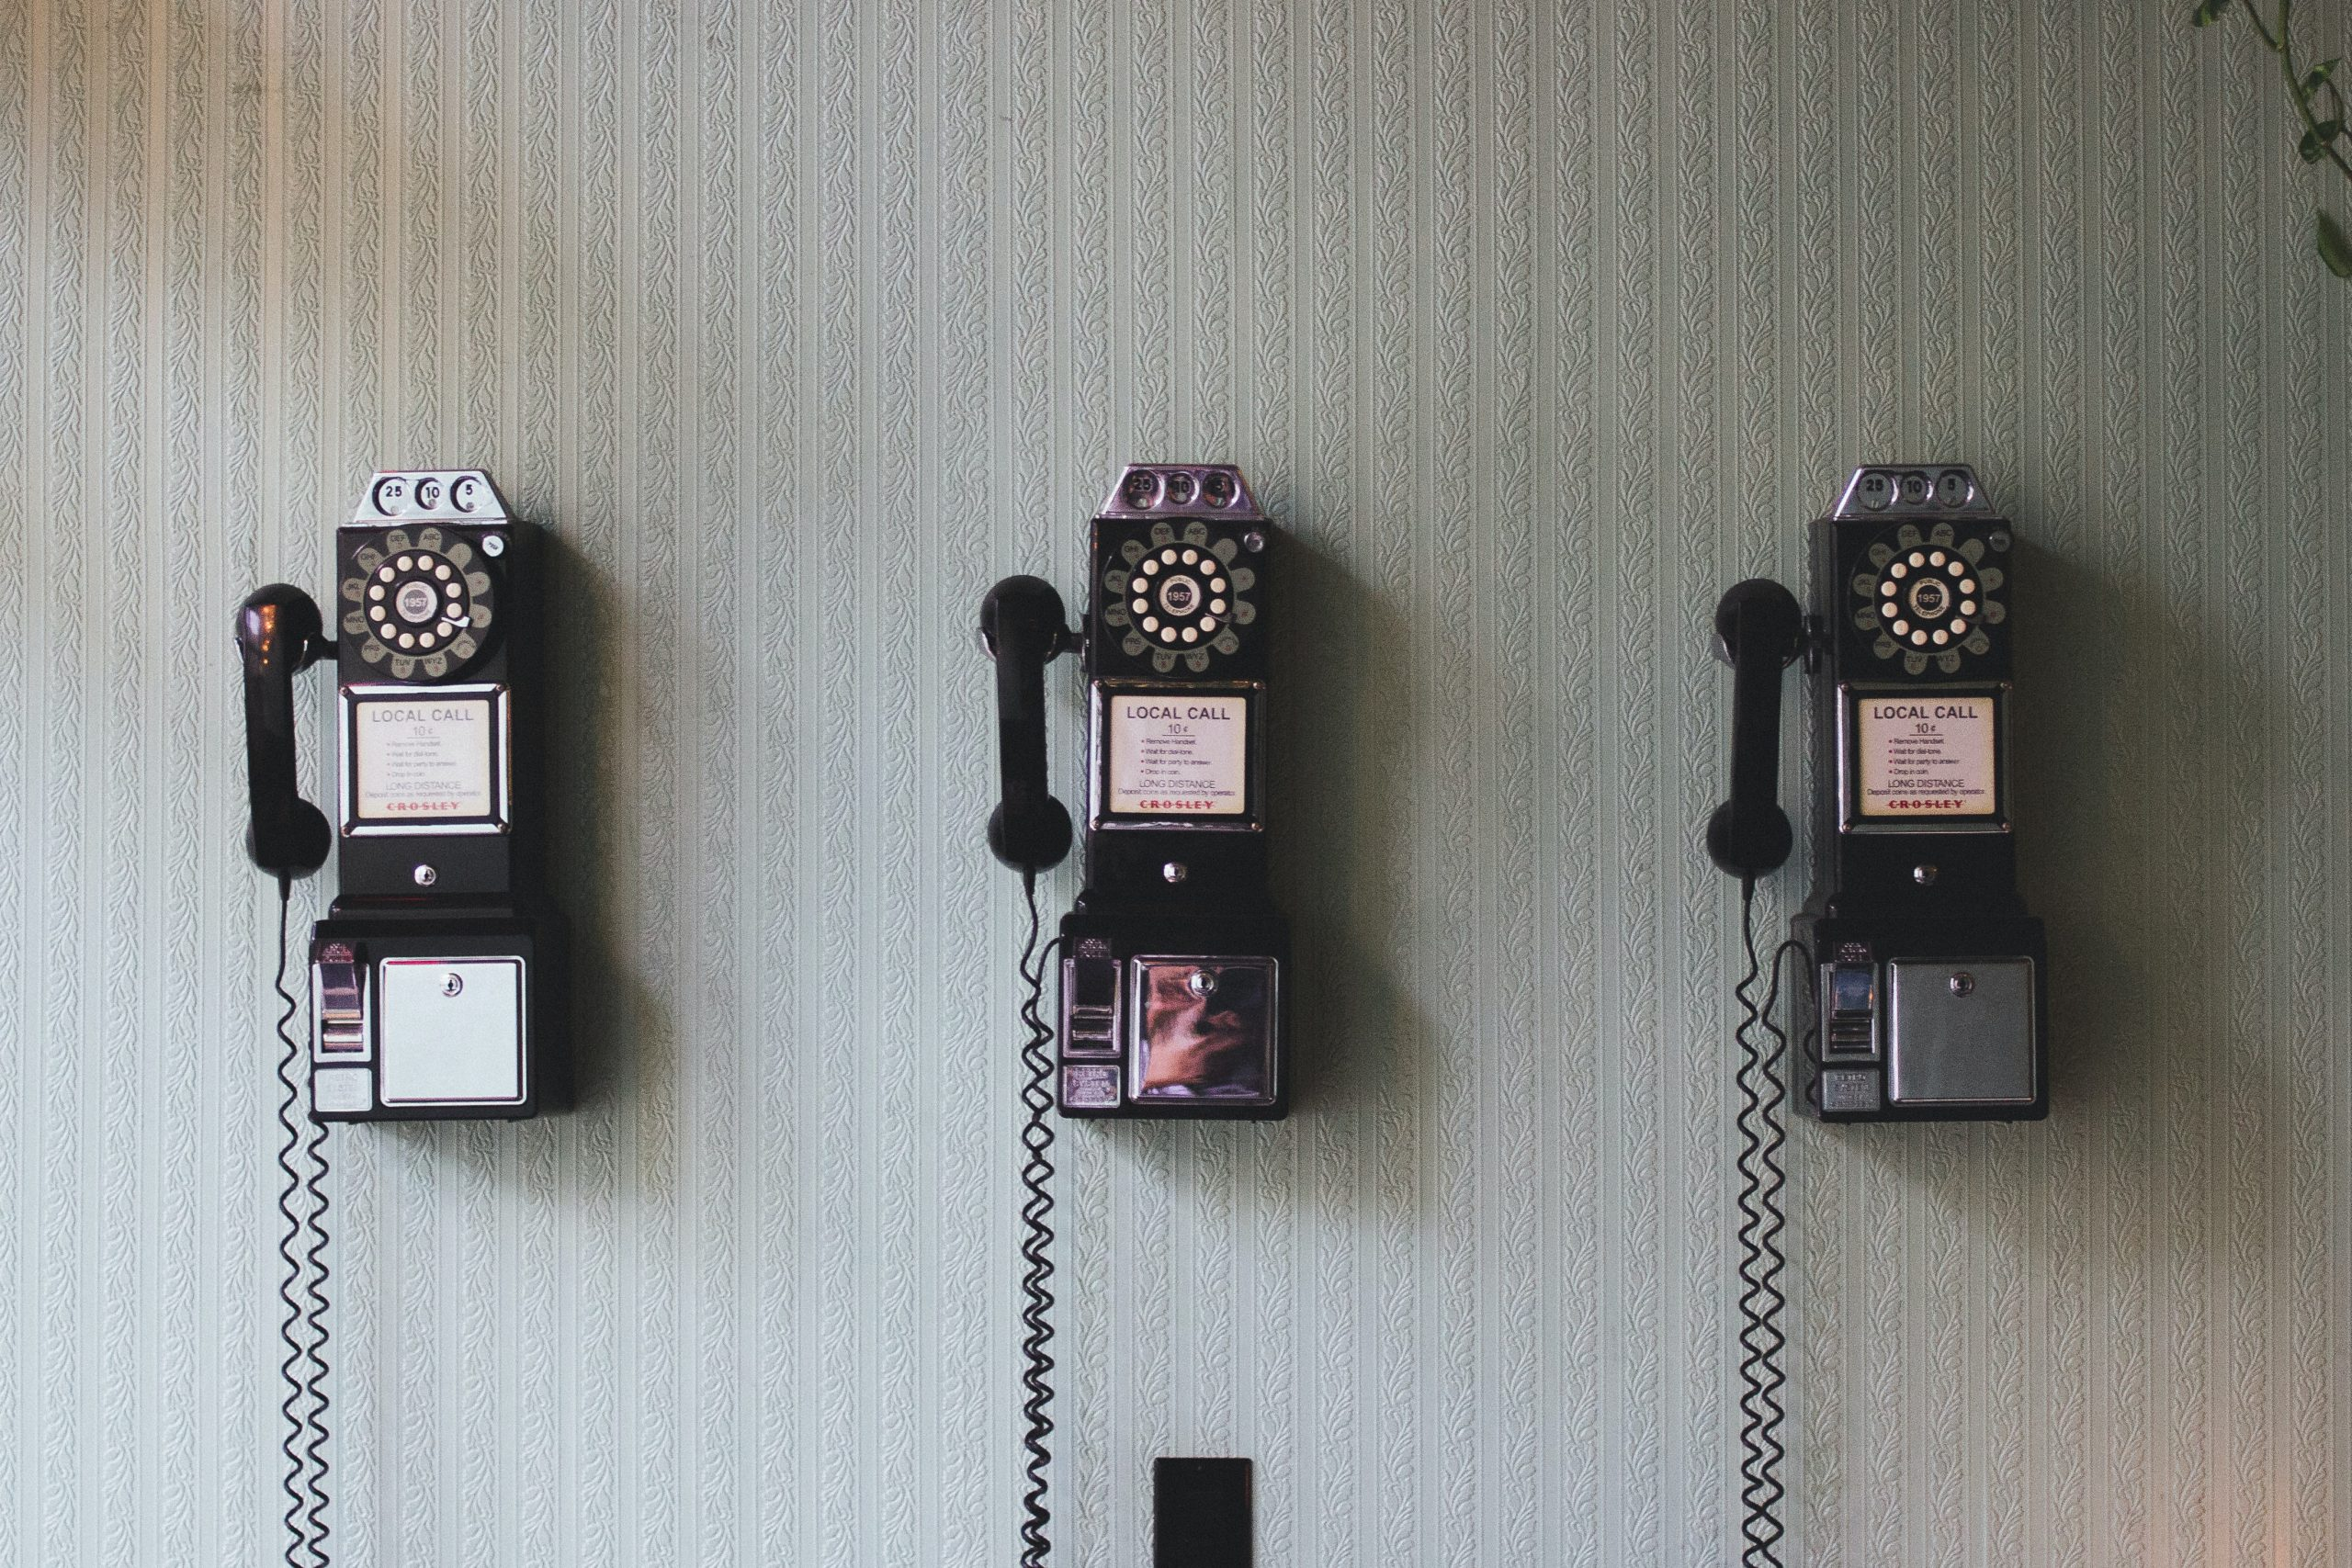 Three telephones hung on the wall